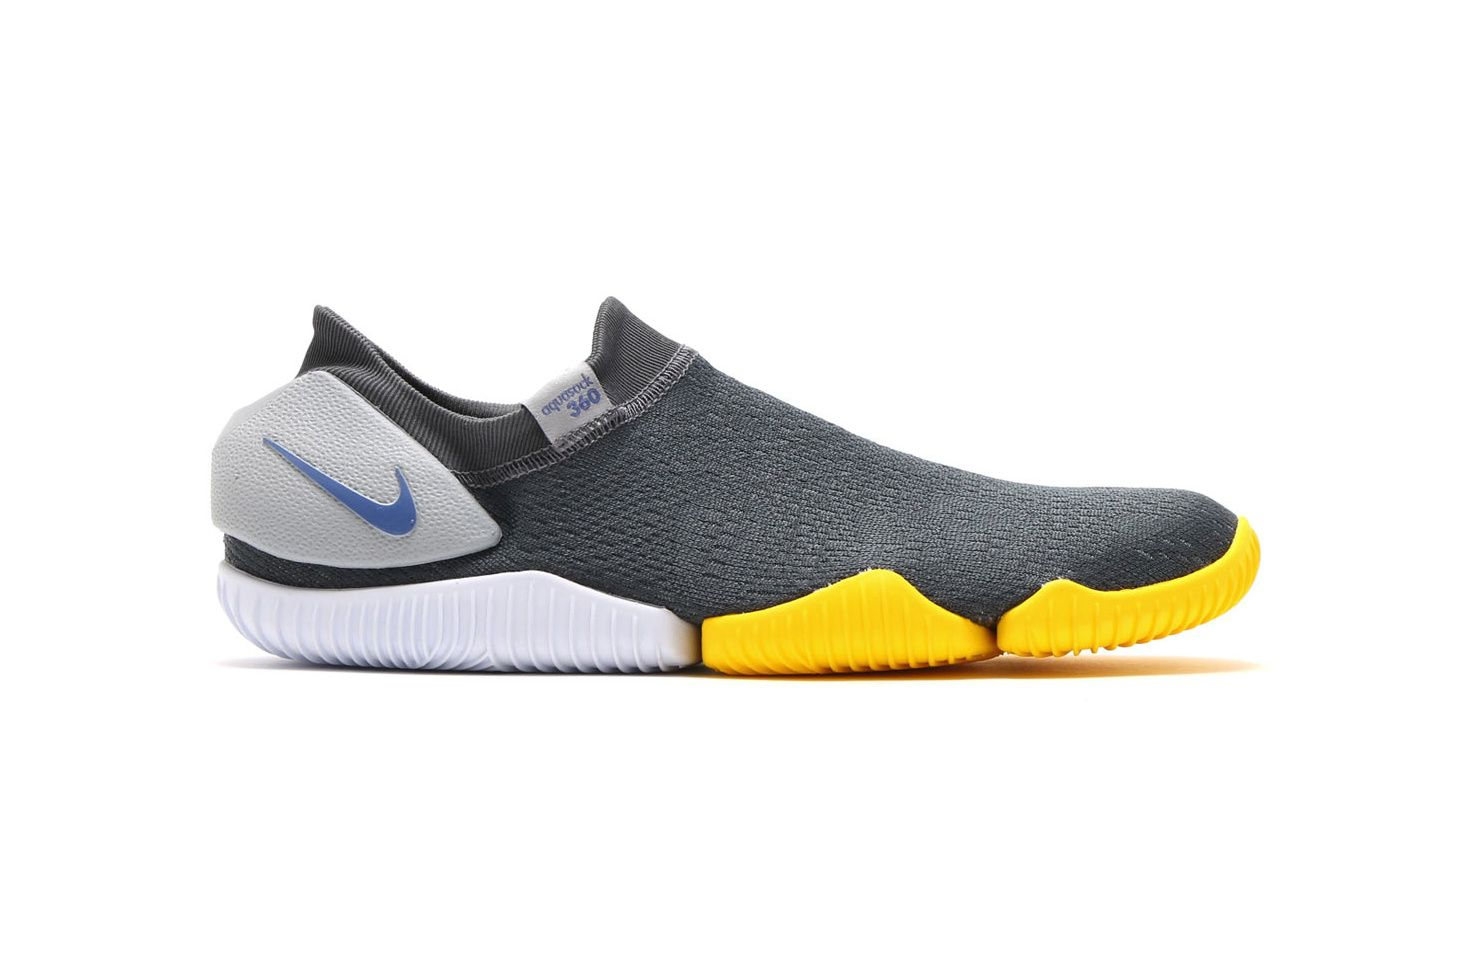 Nike Aqua Sock 360 Total Crimson Wolf Grey Tour Yellow - 3760410